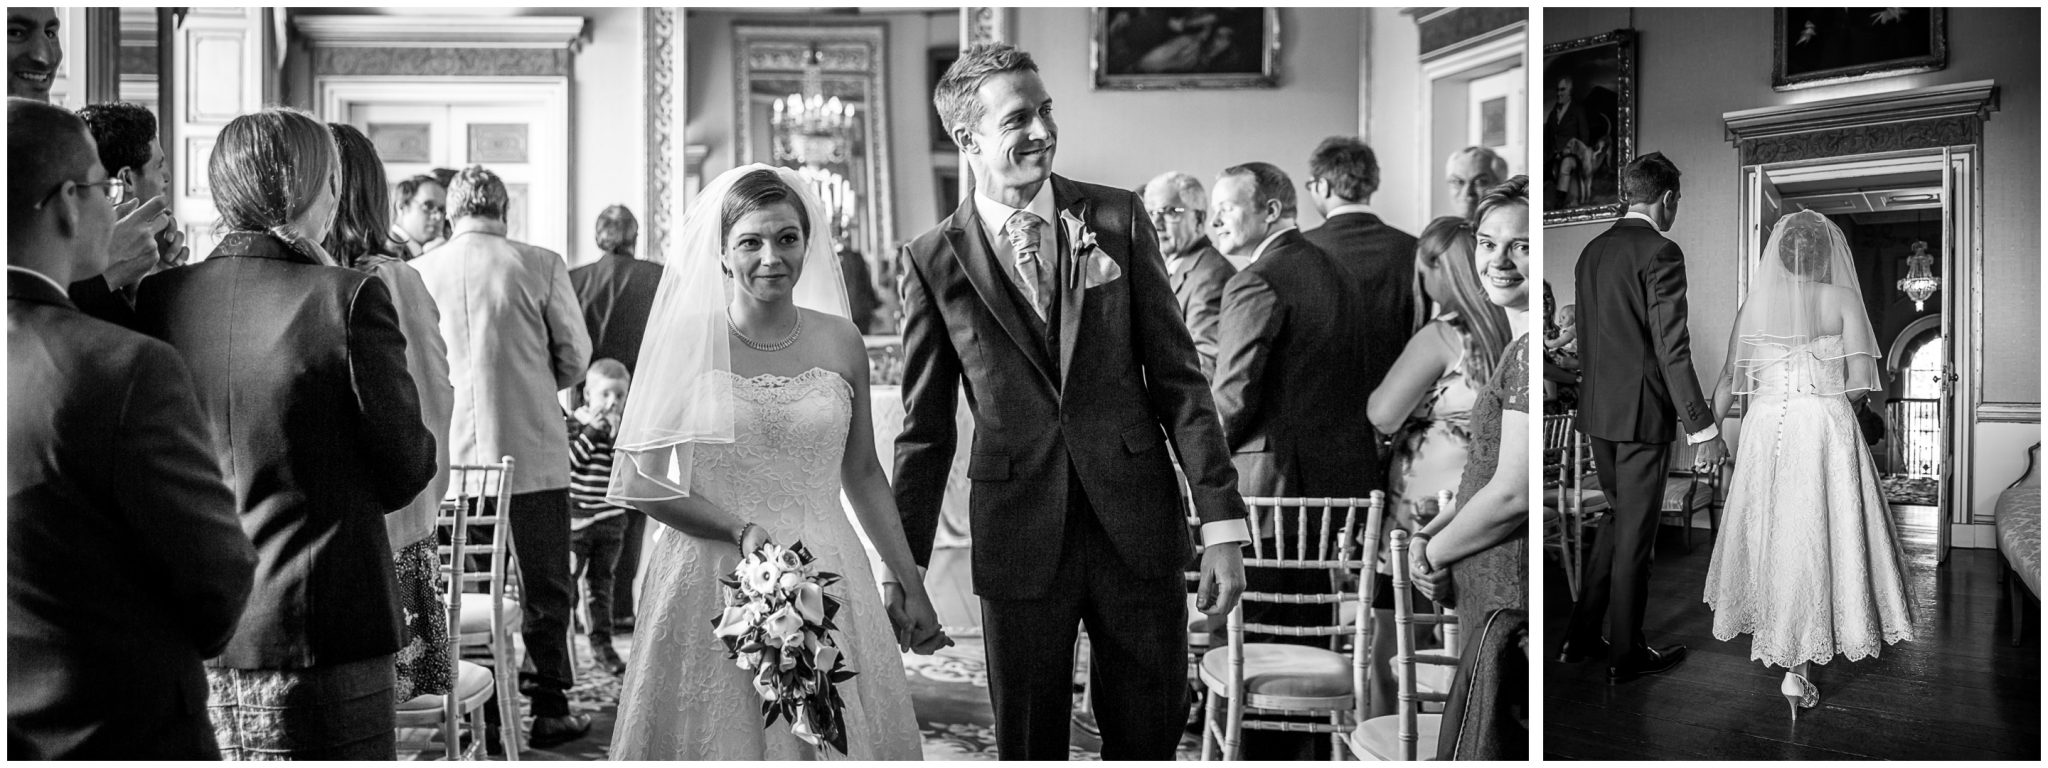 Avington Park wedding photography couple exit the ceremony room